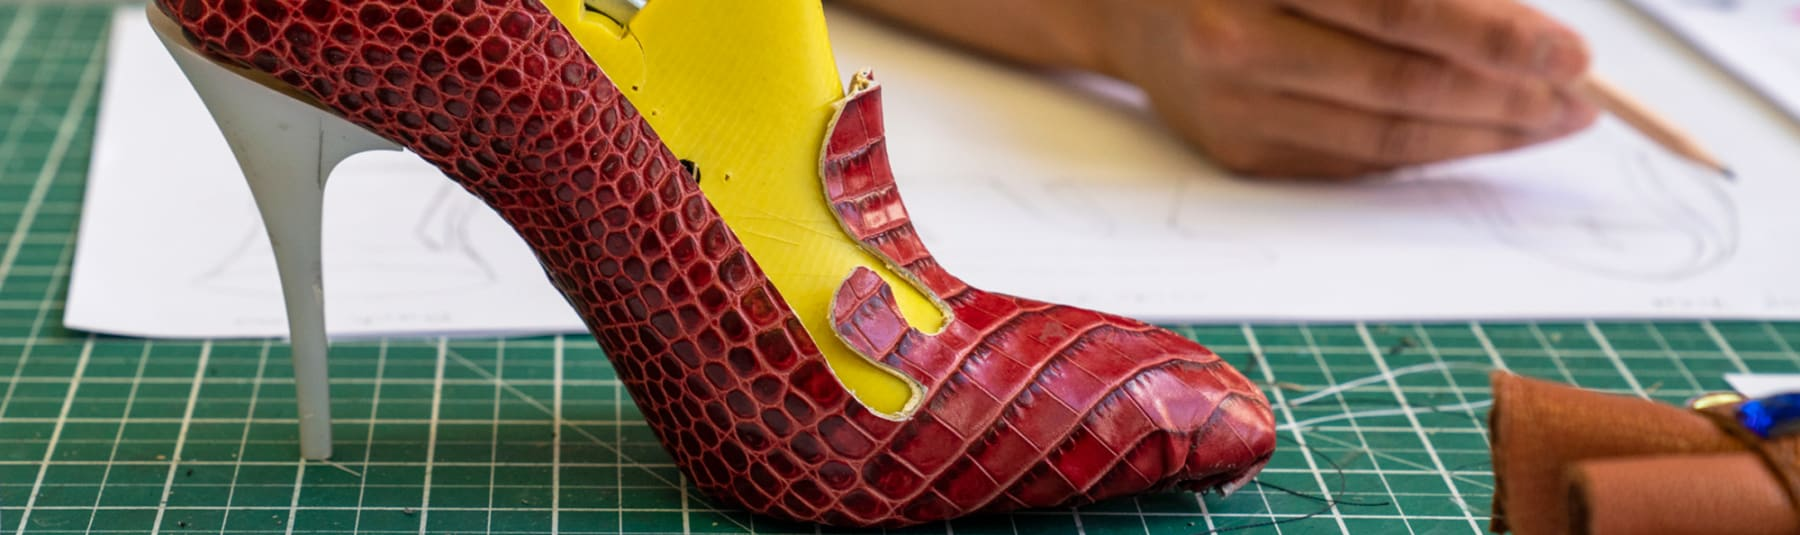 Student sketching heeled shoe